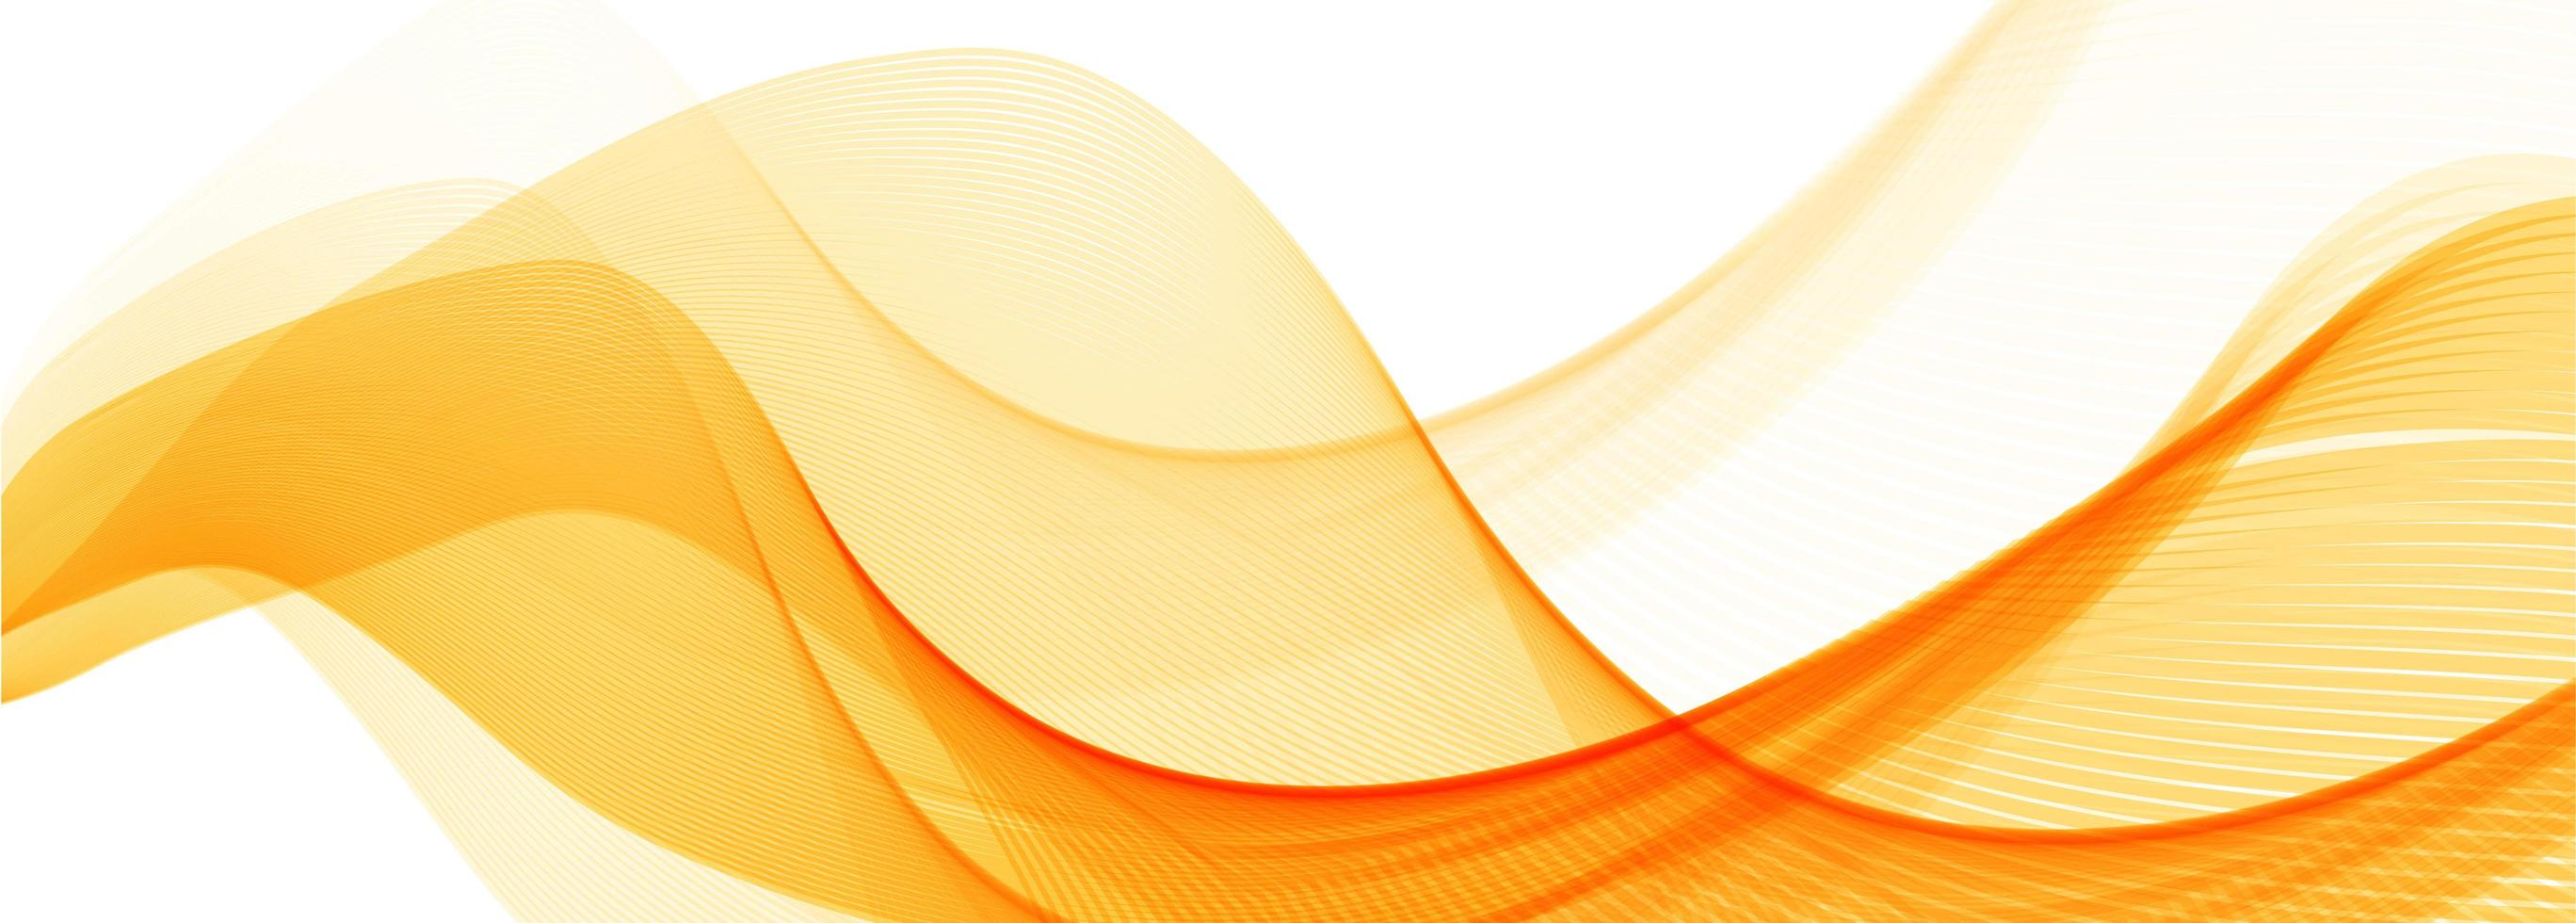 abstract-orange-stylish-wave-banner-background-vector